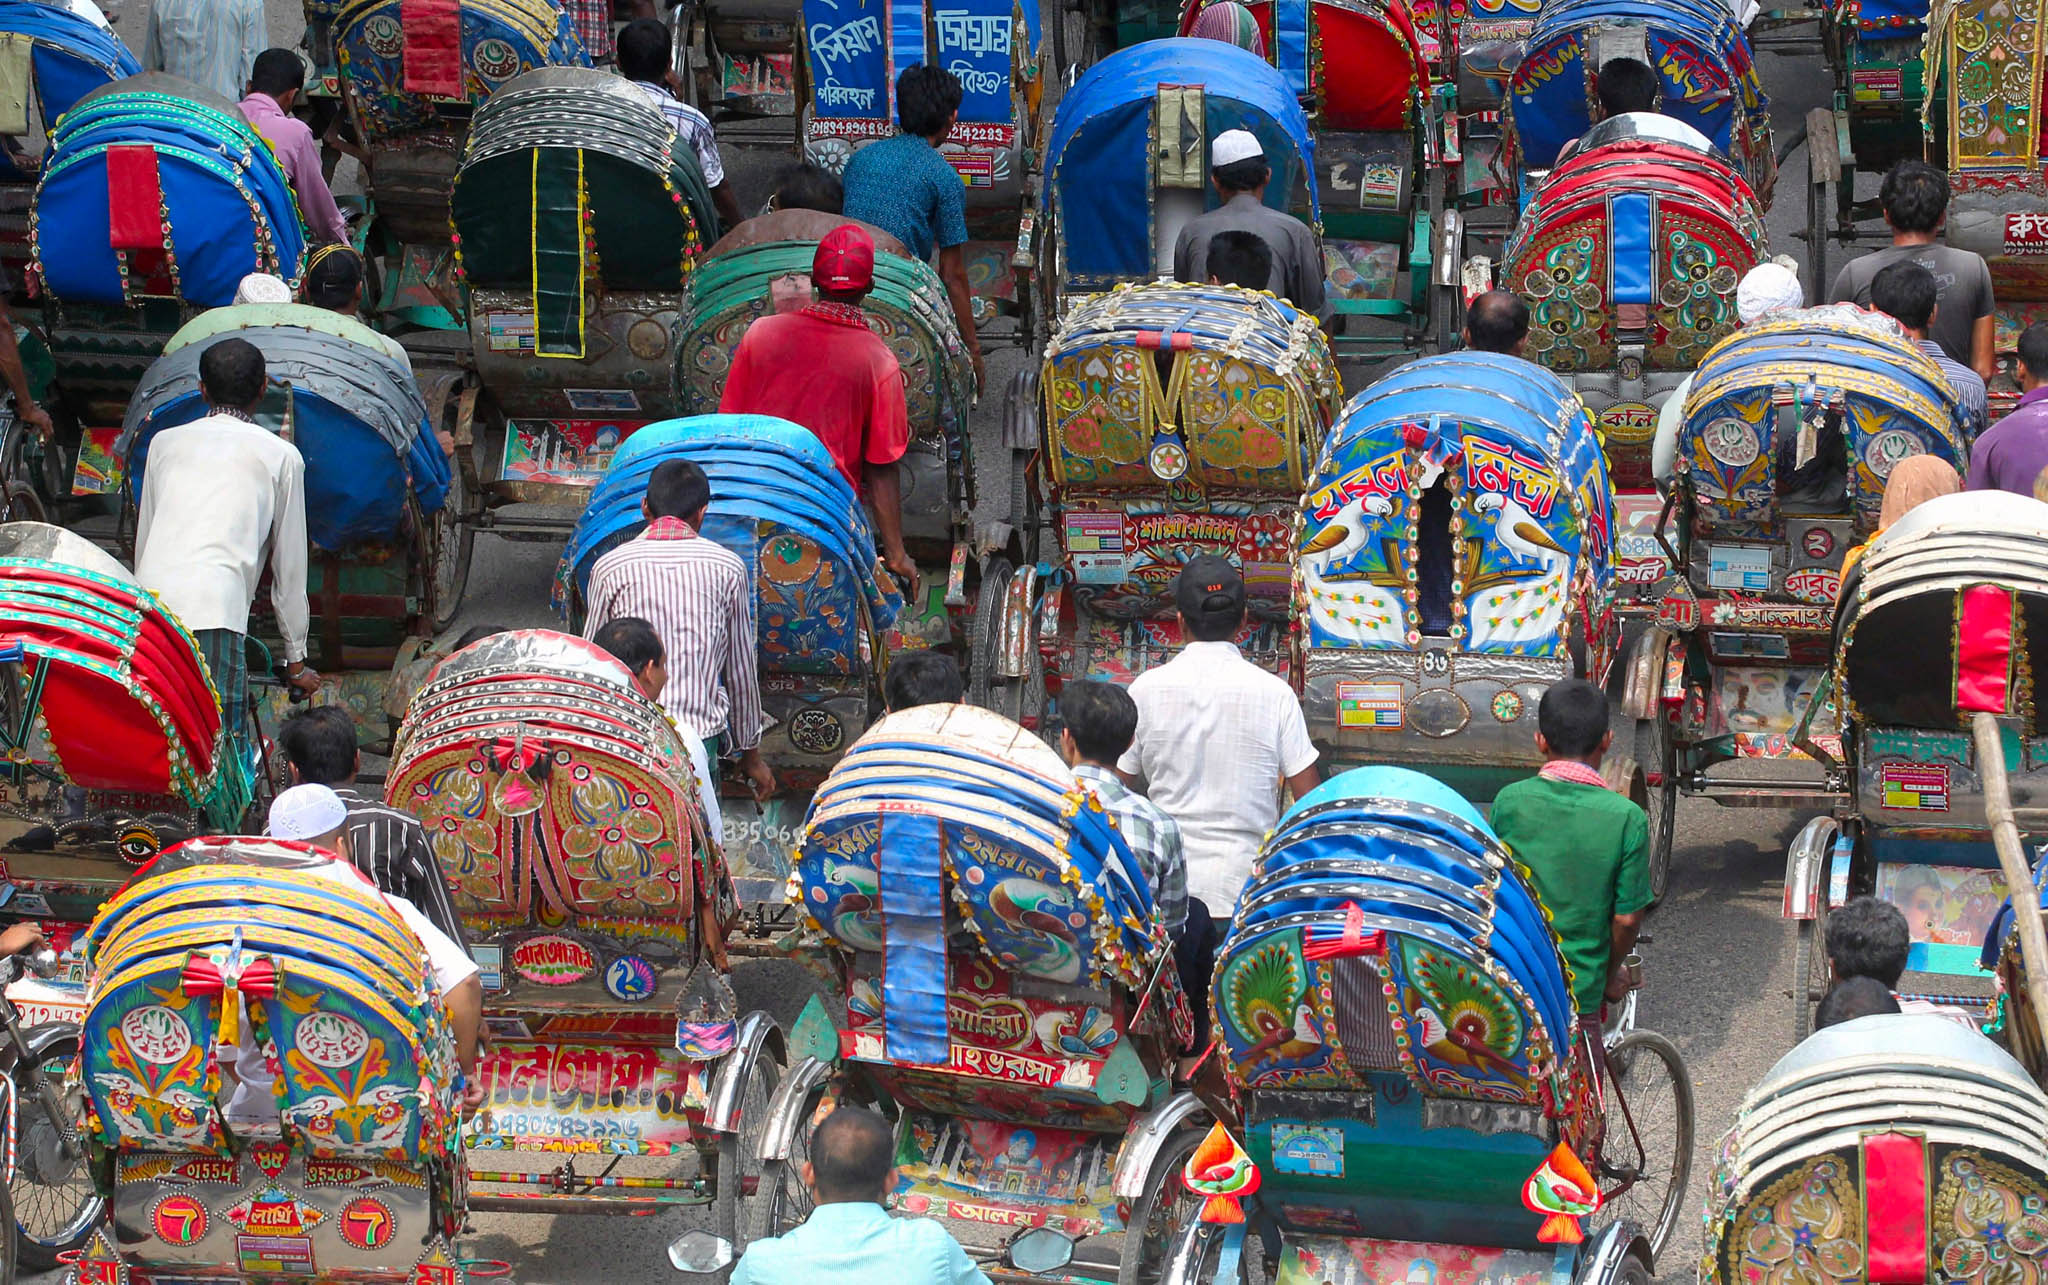 To make Dhaka rickshaw capital of the world, at least 400,000 rickshaws are traveling around the streets of Dhaka each day.